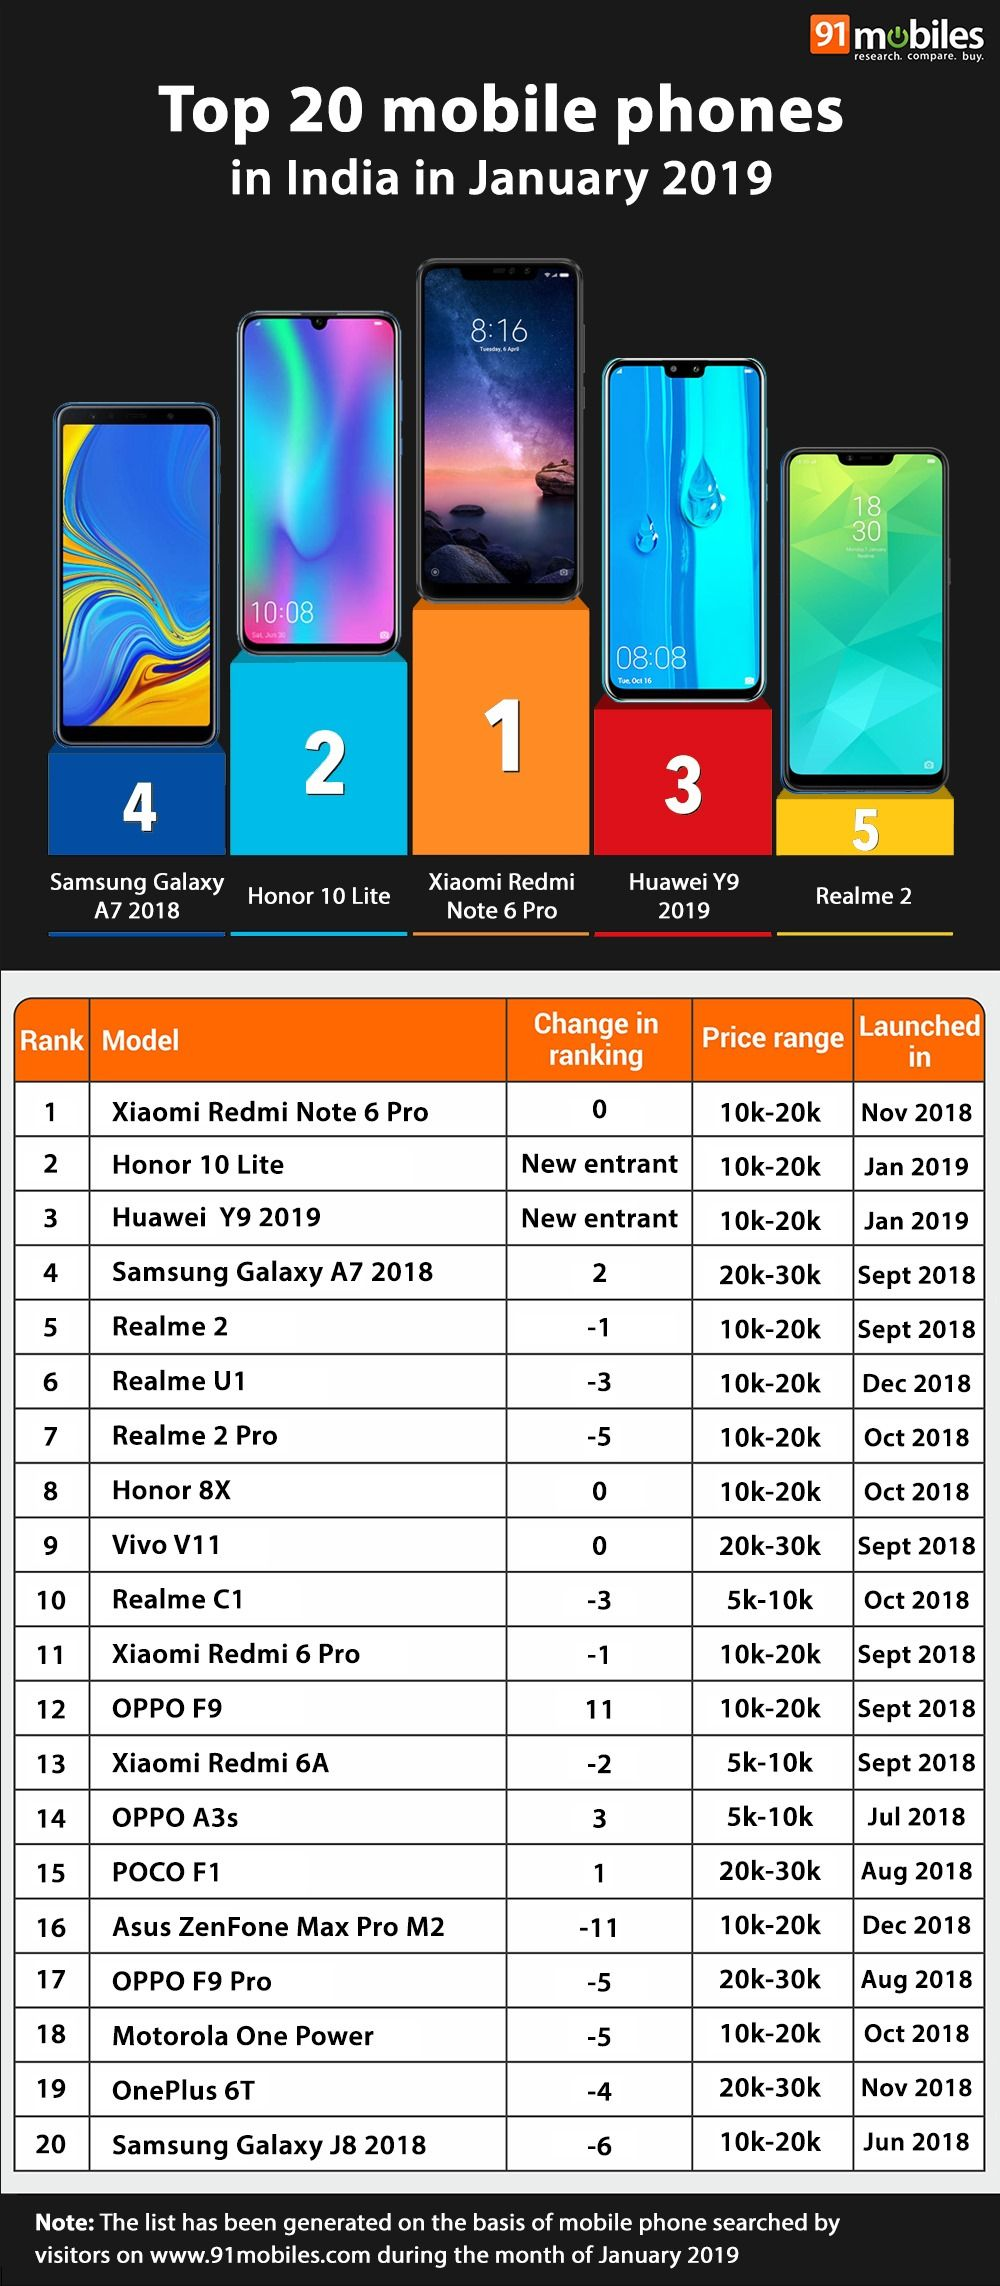 Top 20 mobile phones in India in January 2019